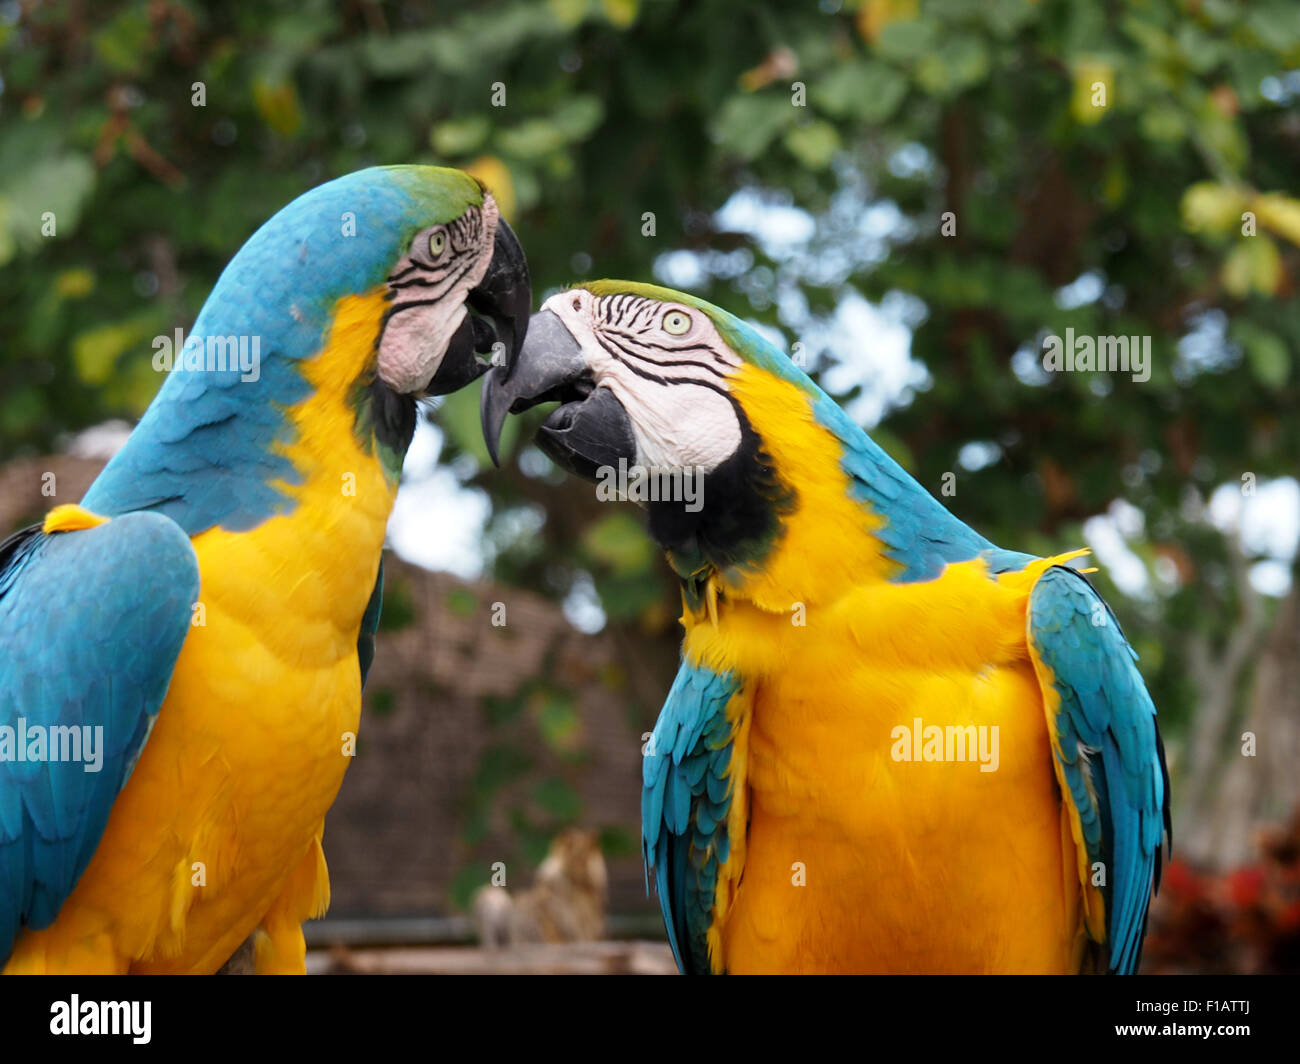 Paire d'Aras bleu et jaune montrer de l'affection Photo Stock